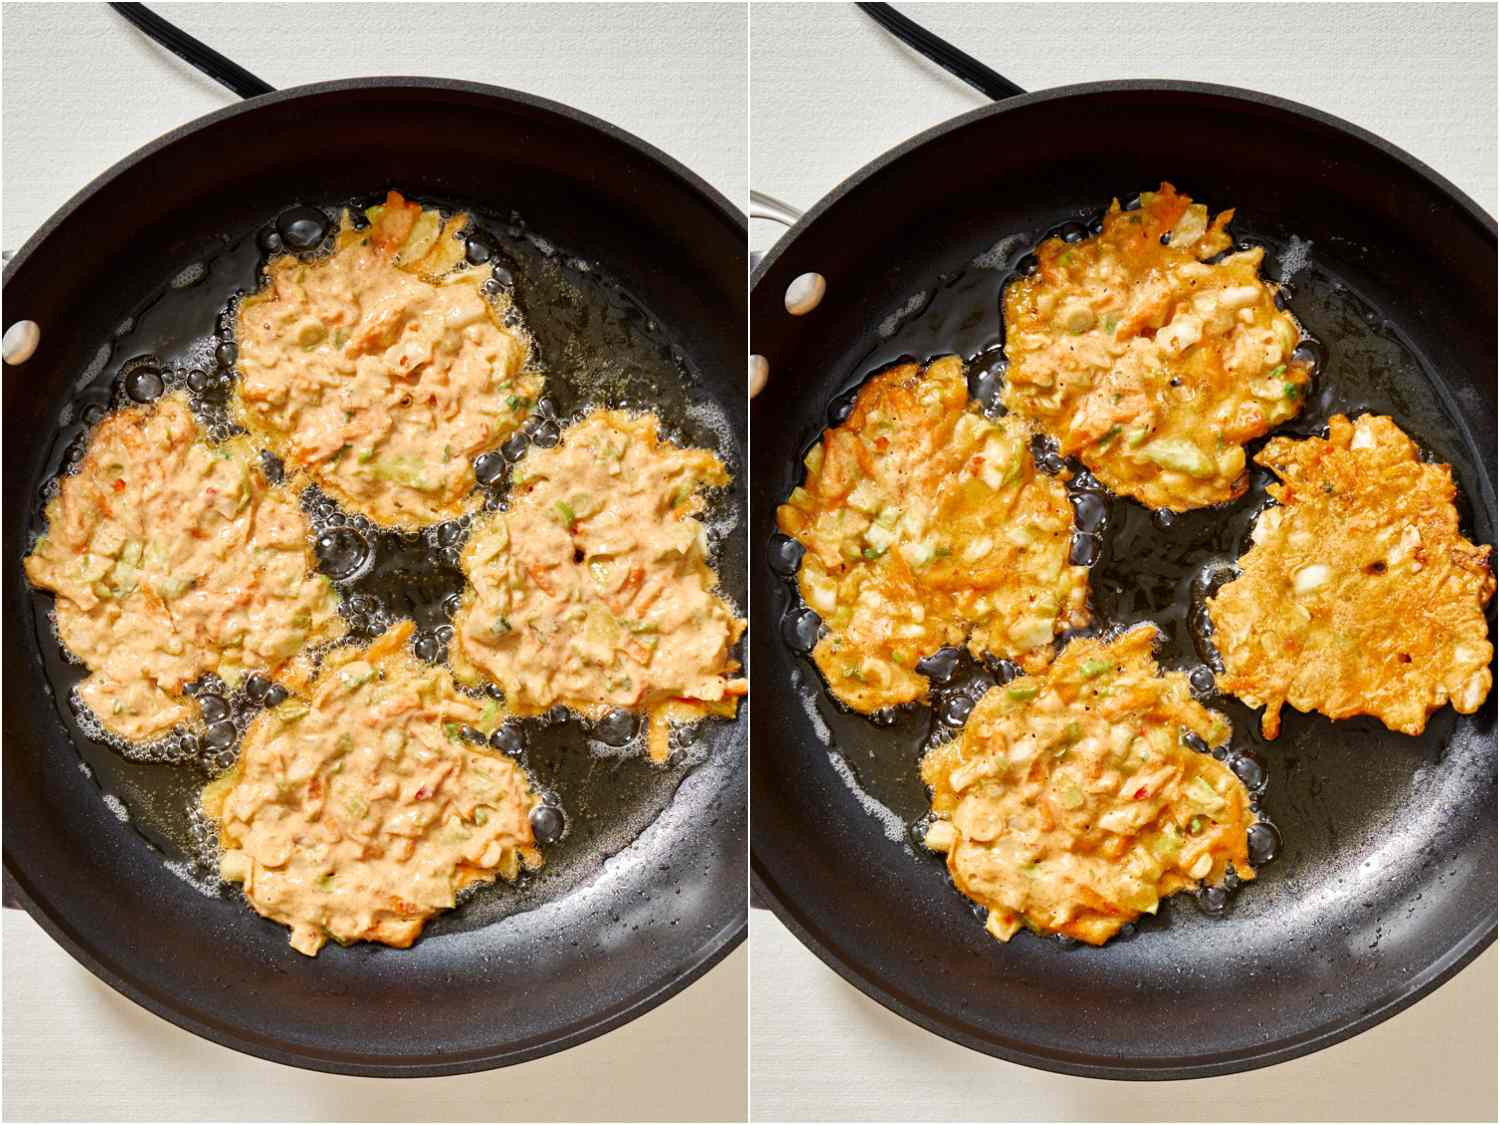 Frying vegetable pancakes in a non-stick skillet